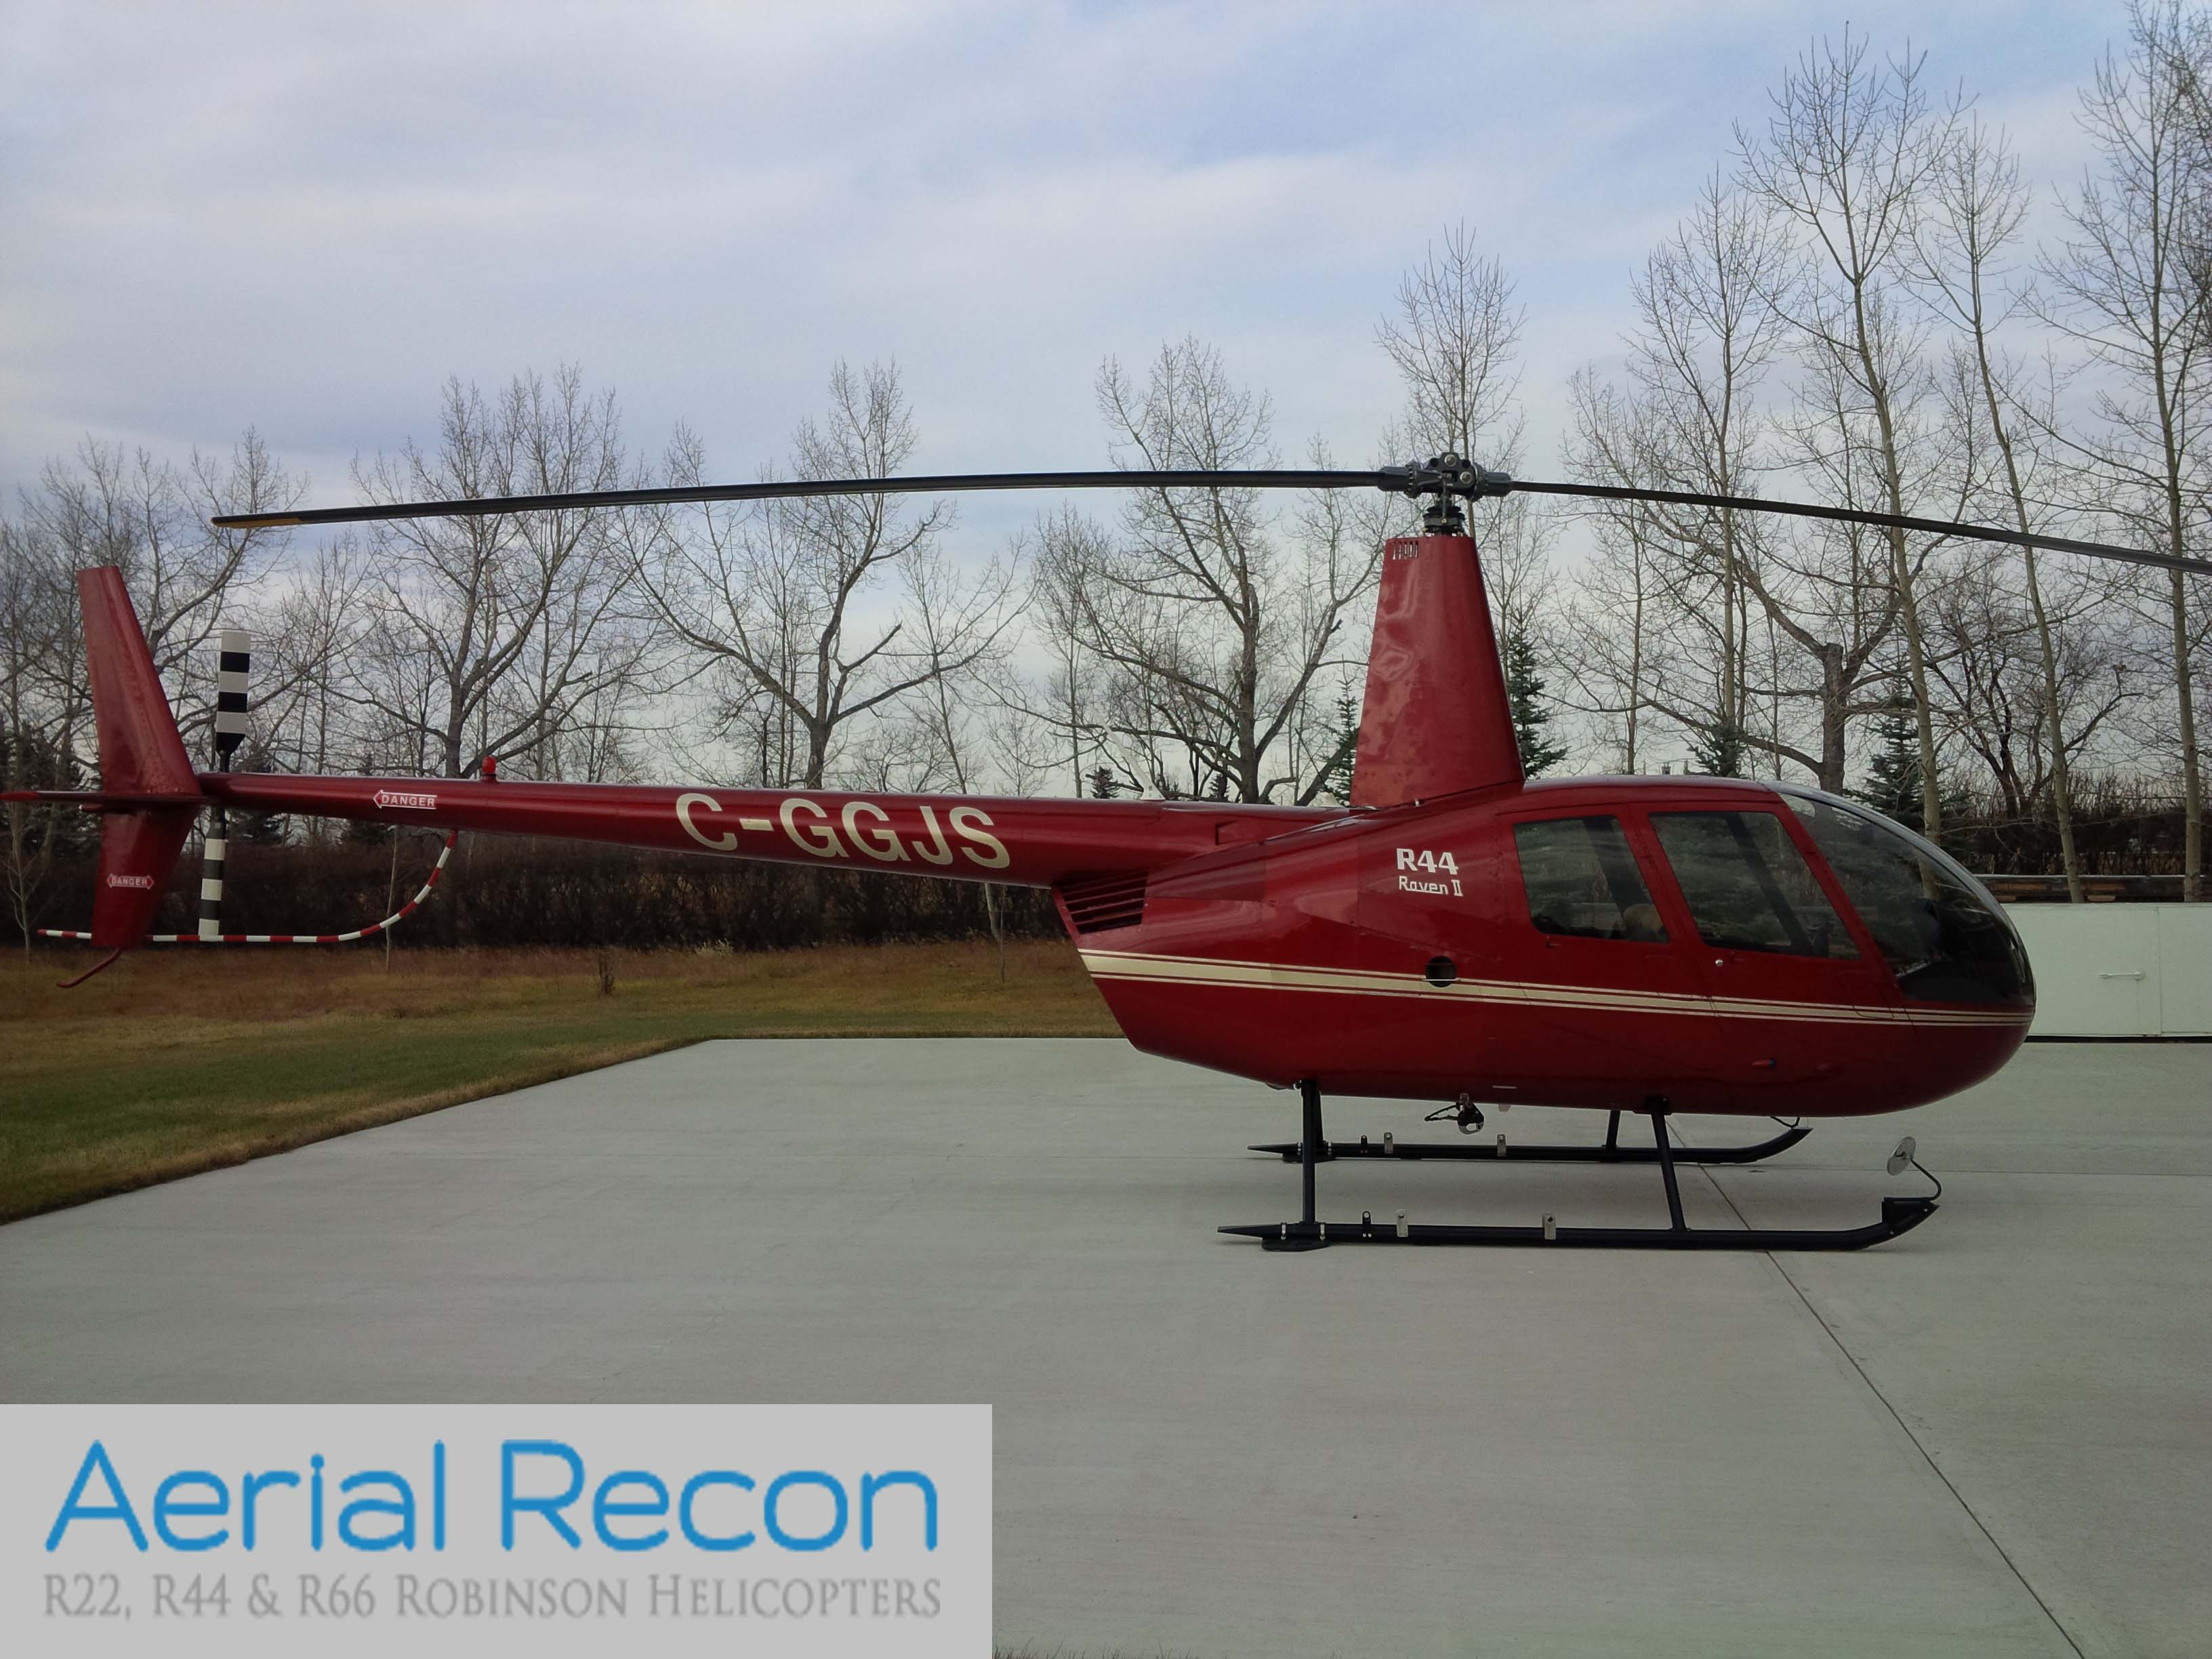 SOLD 2008 R44 Raven II : Aerial Recon Ltd | Robinson Helicopter Dealer